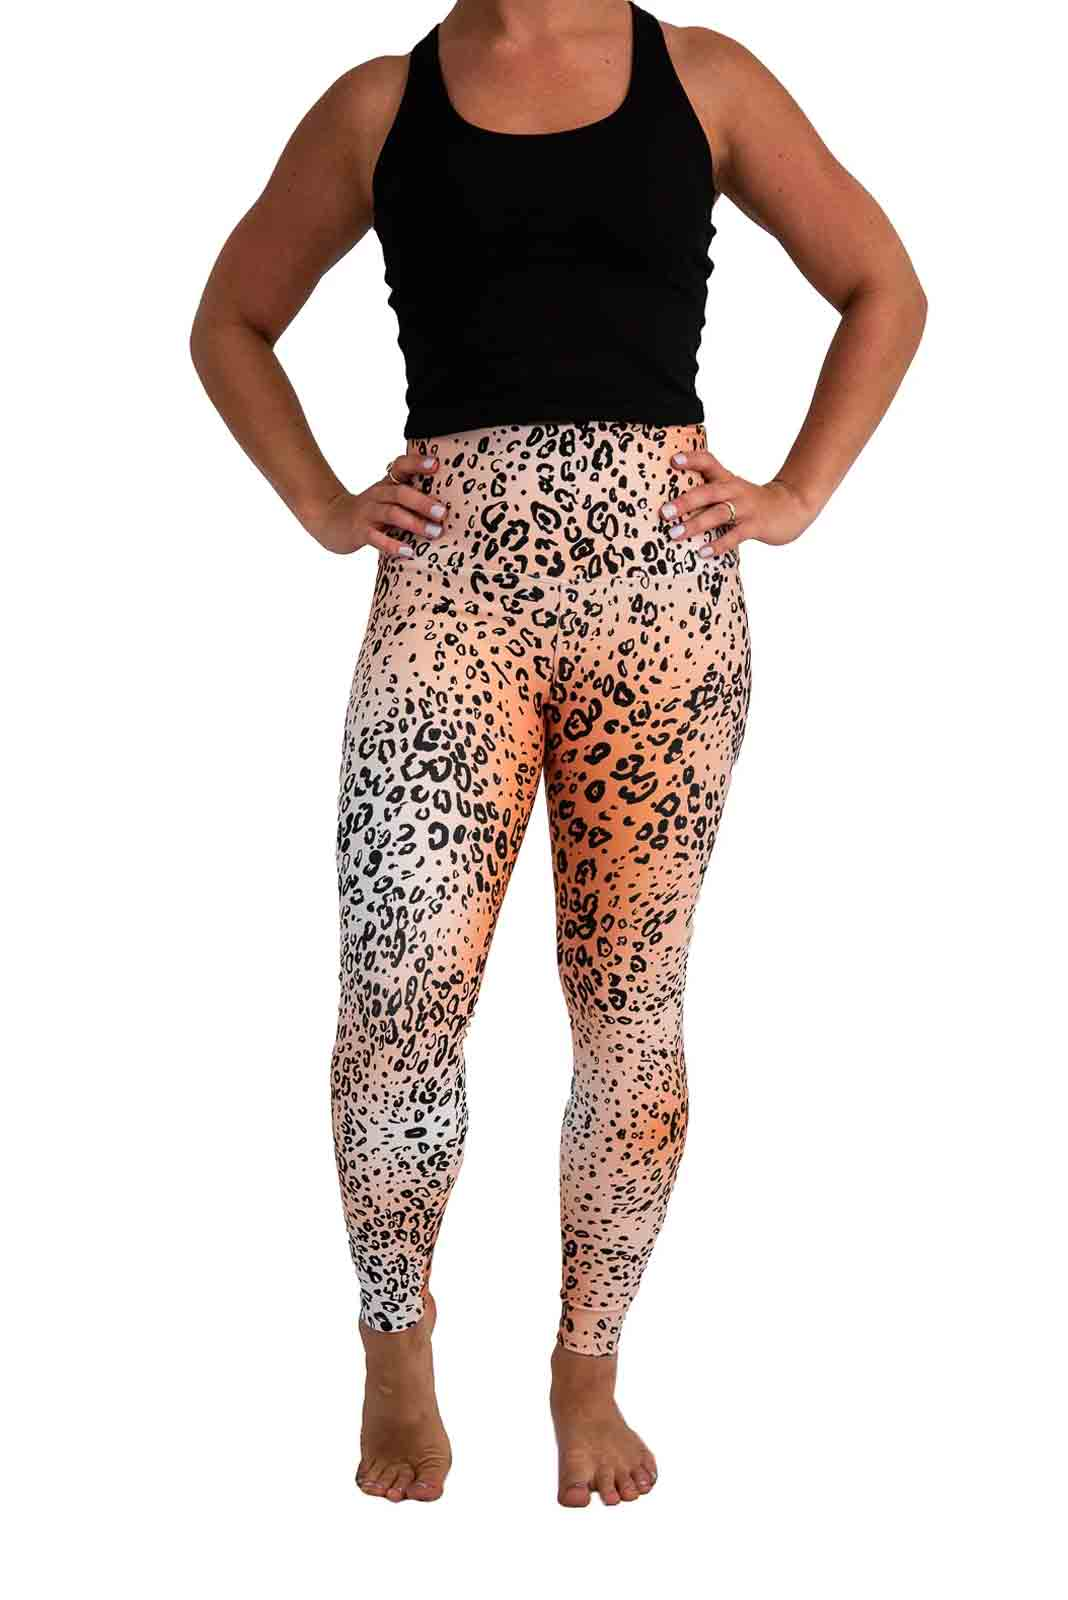 Golden Cheetah Yoga Pants